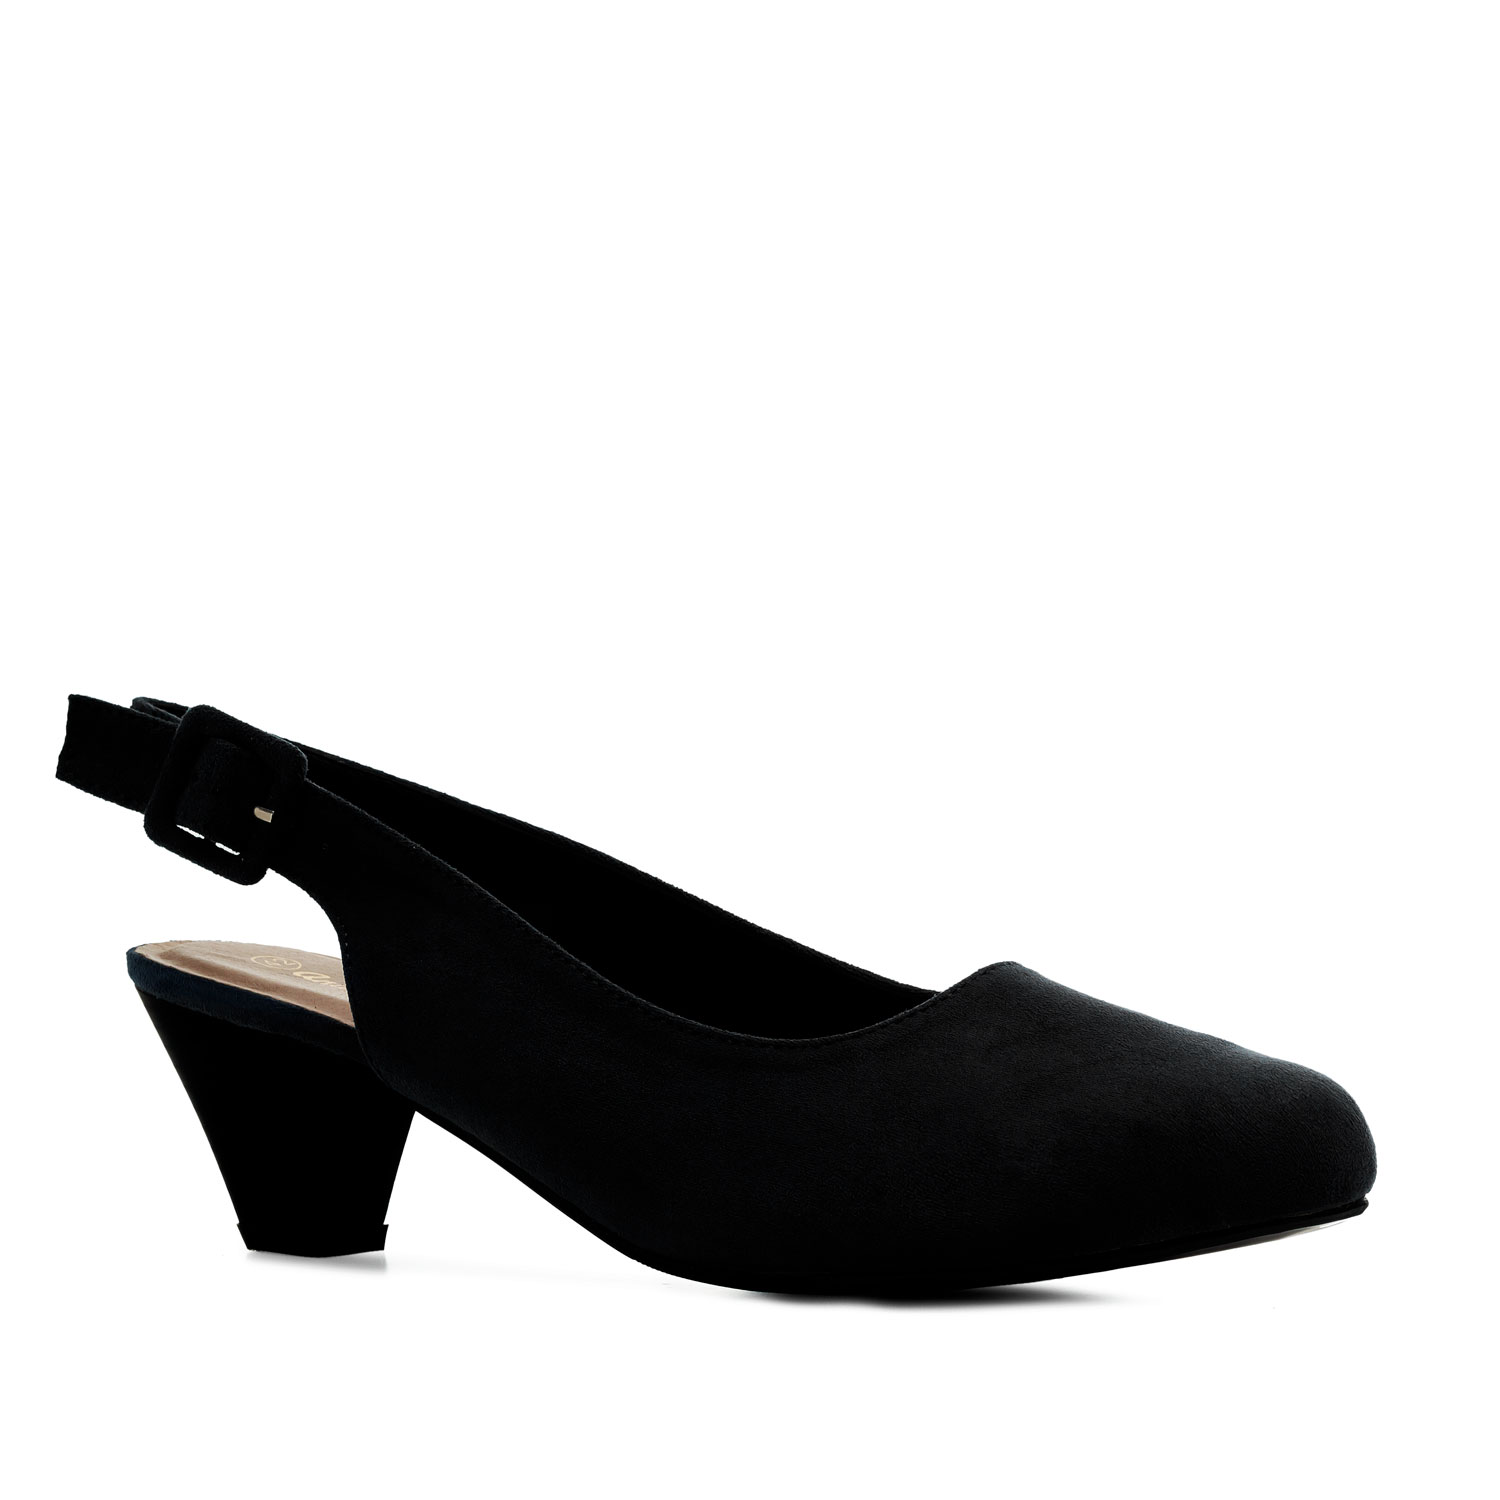 Slingback Shoes in Black Suede